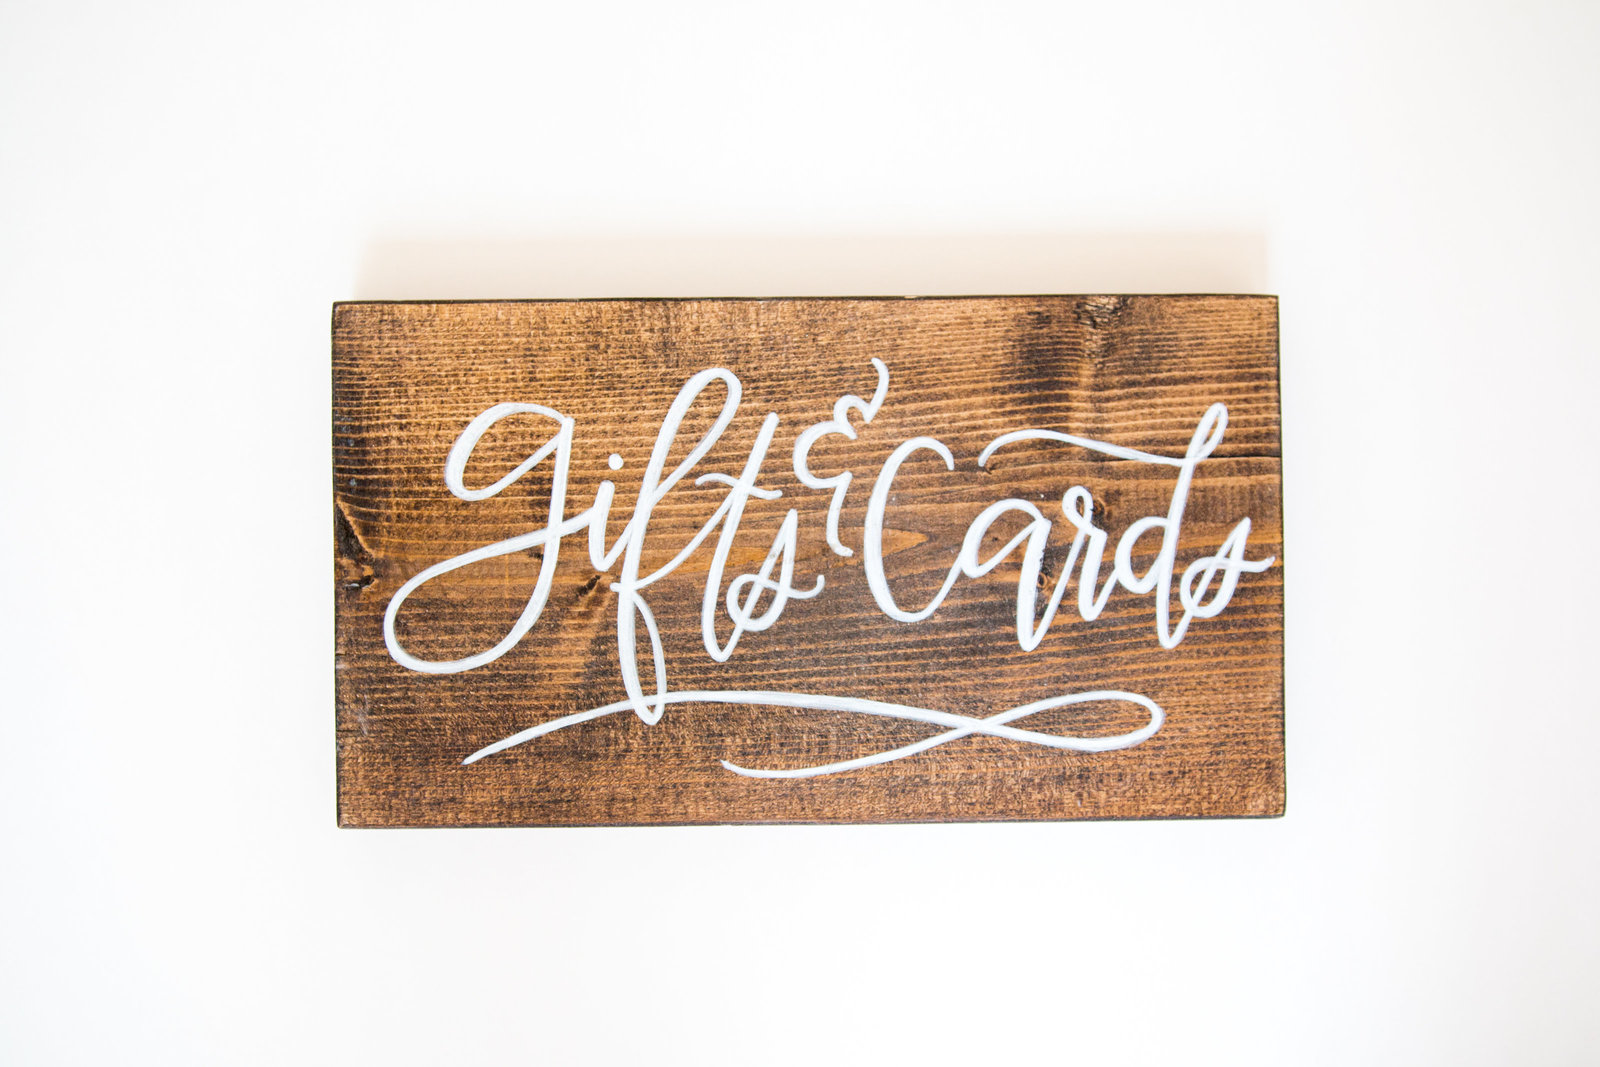 wood sign  with white calligraphy for gifts and cards at weddings and events with Hue and FA Rentals